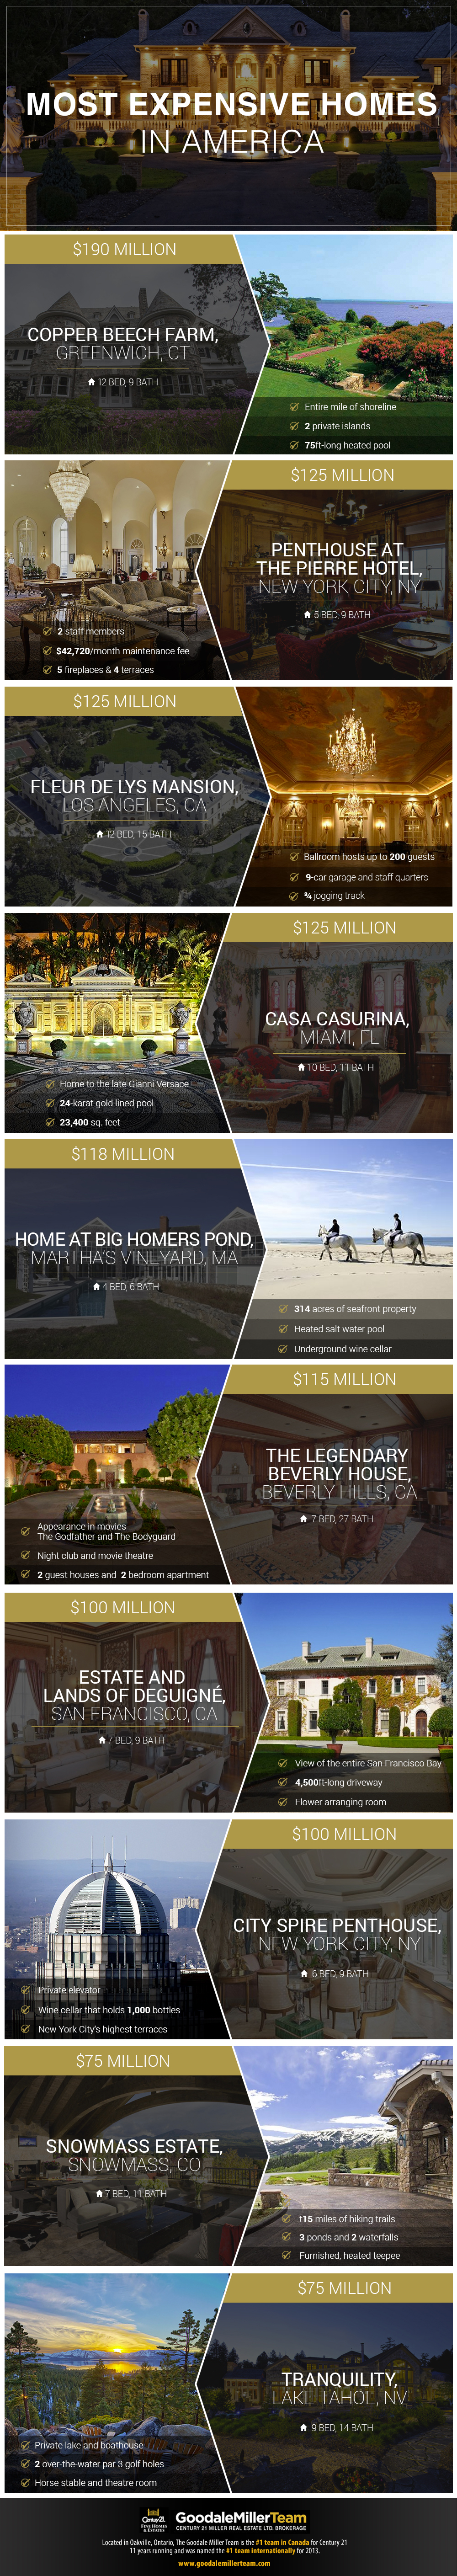 The Most Expensive Homes in the USA